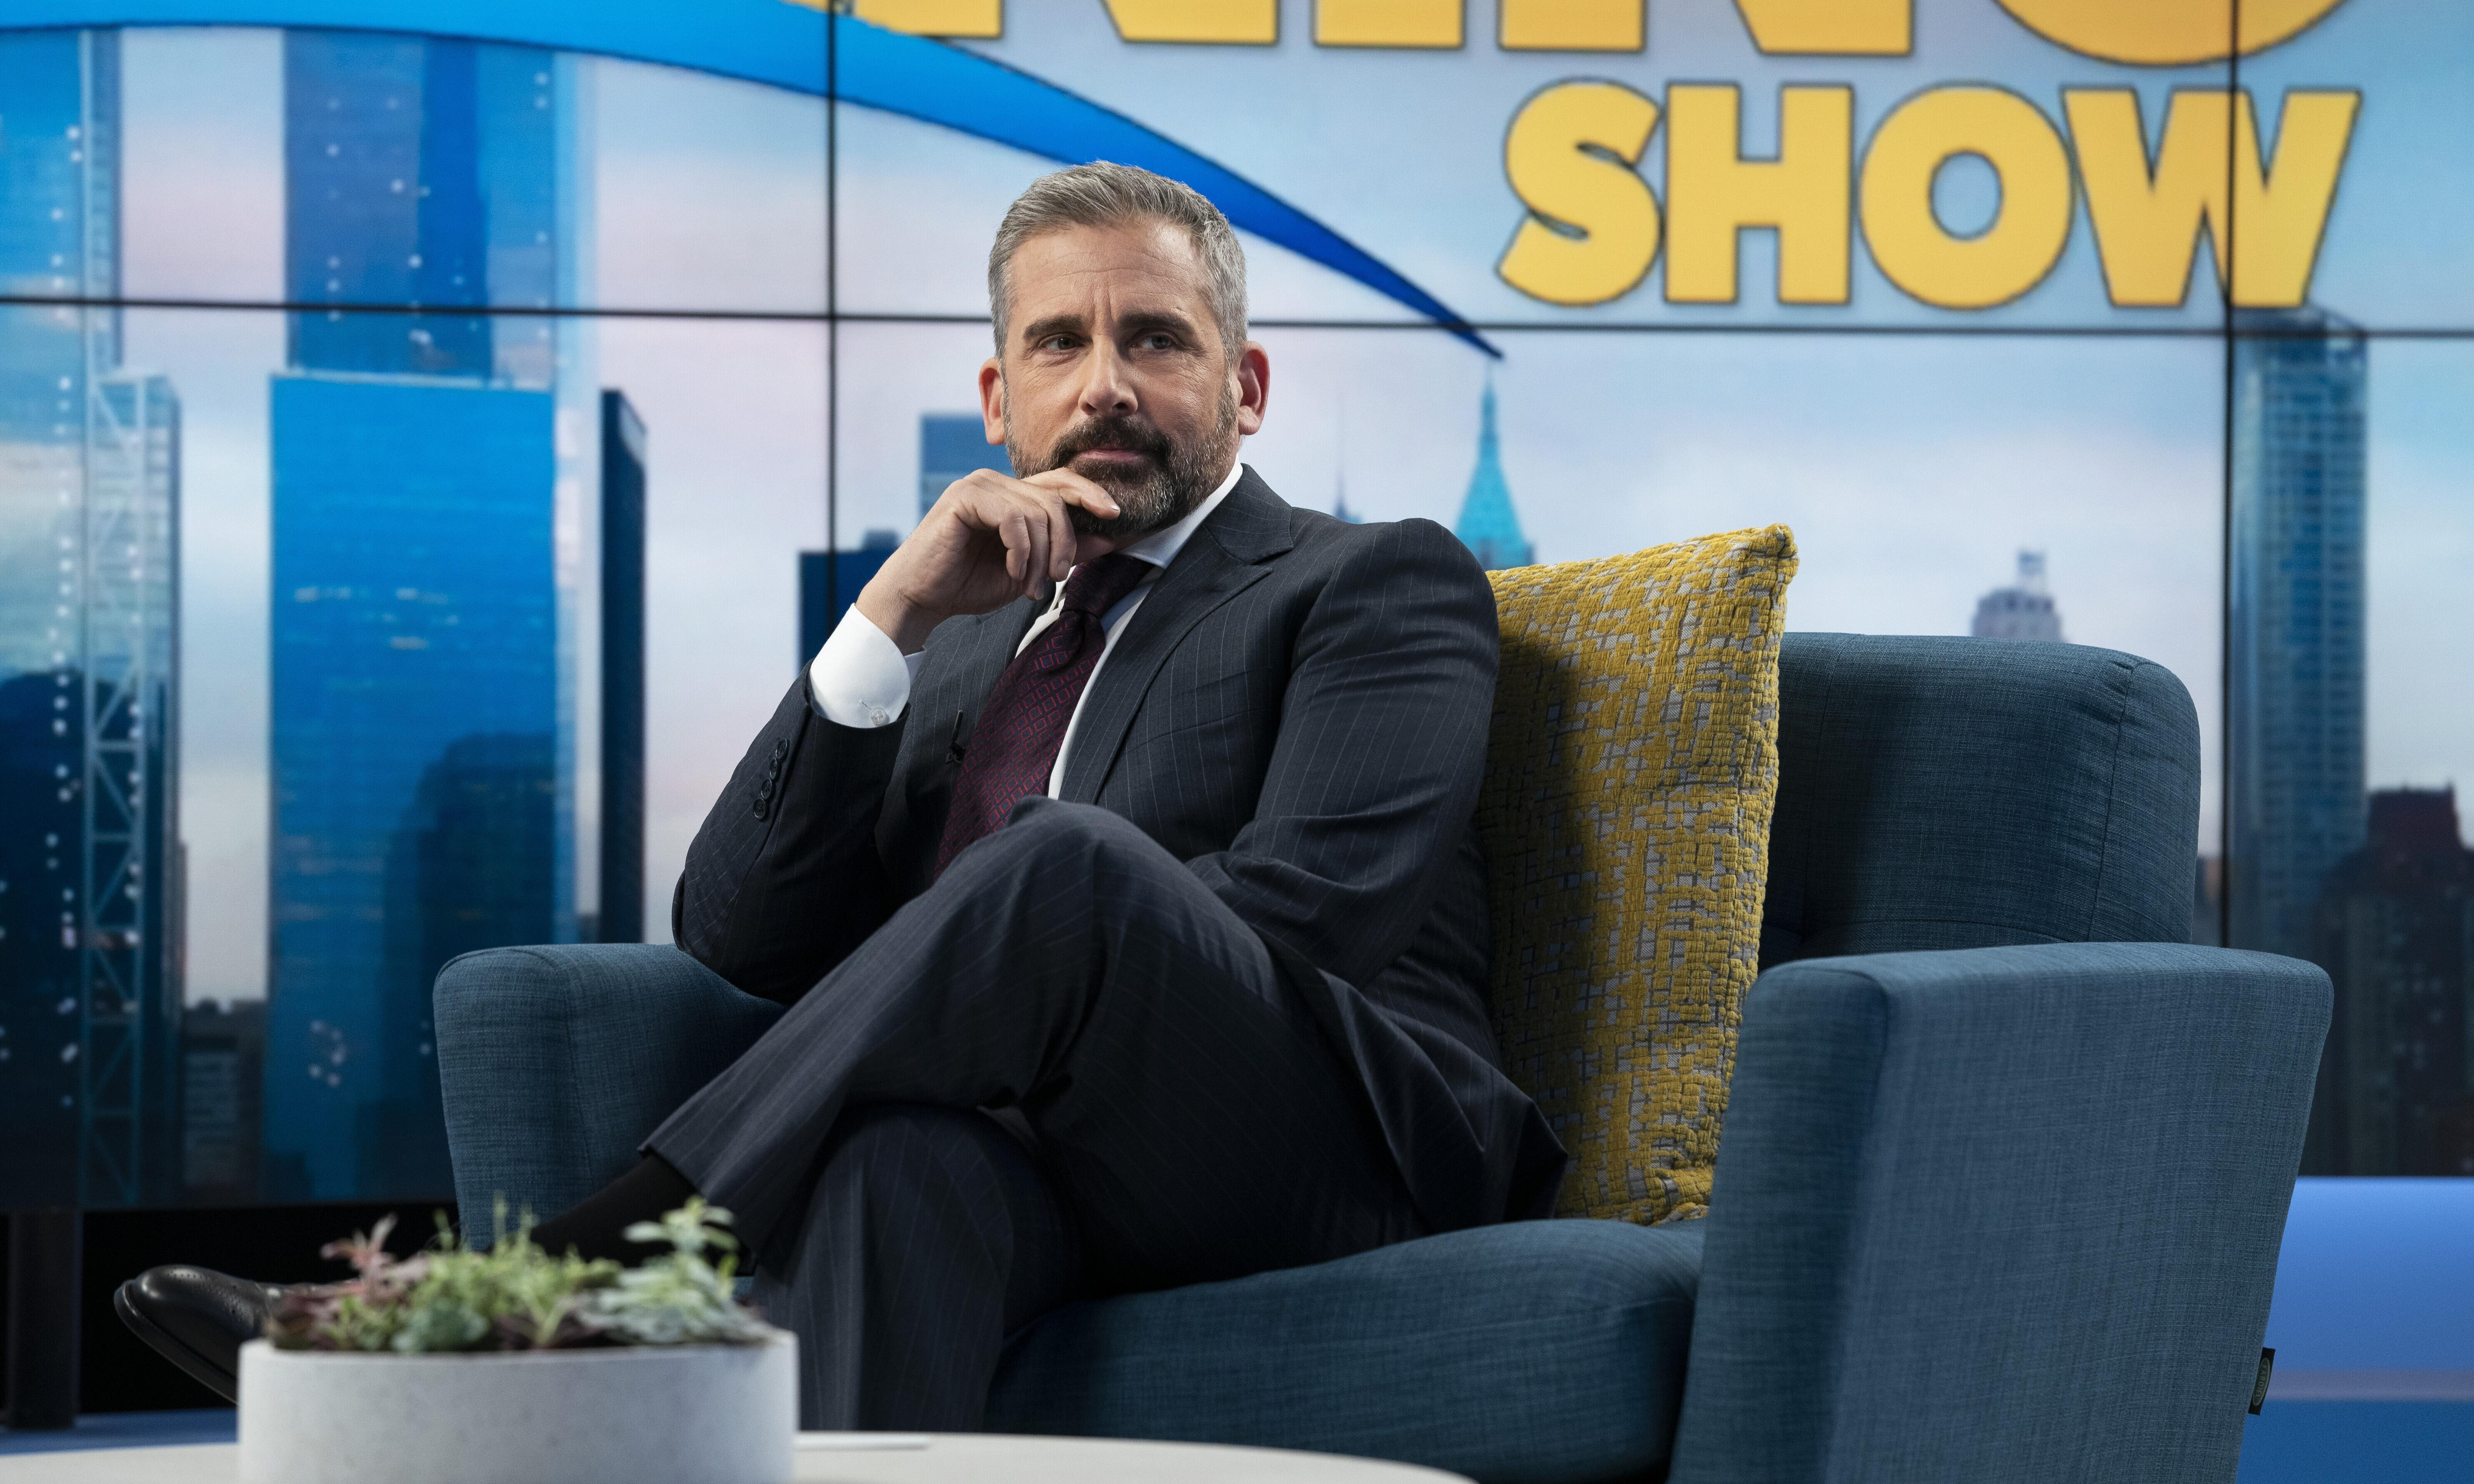 The Morning Show: why the messy #MeToo drama is both hit and miss